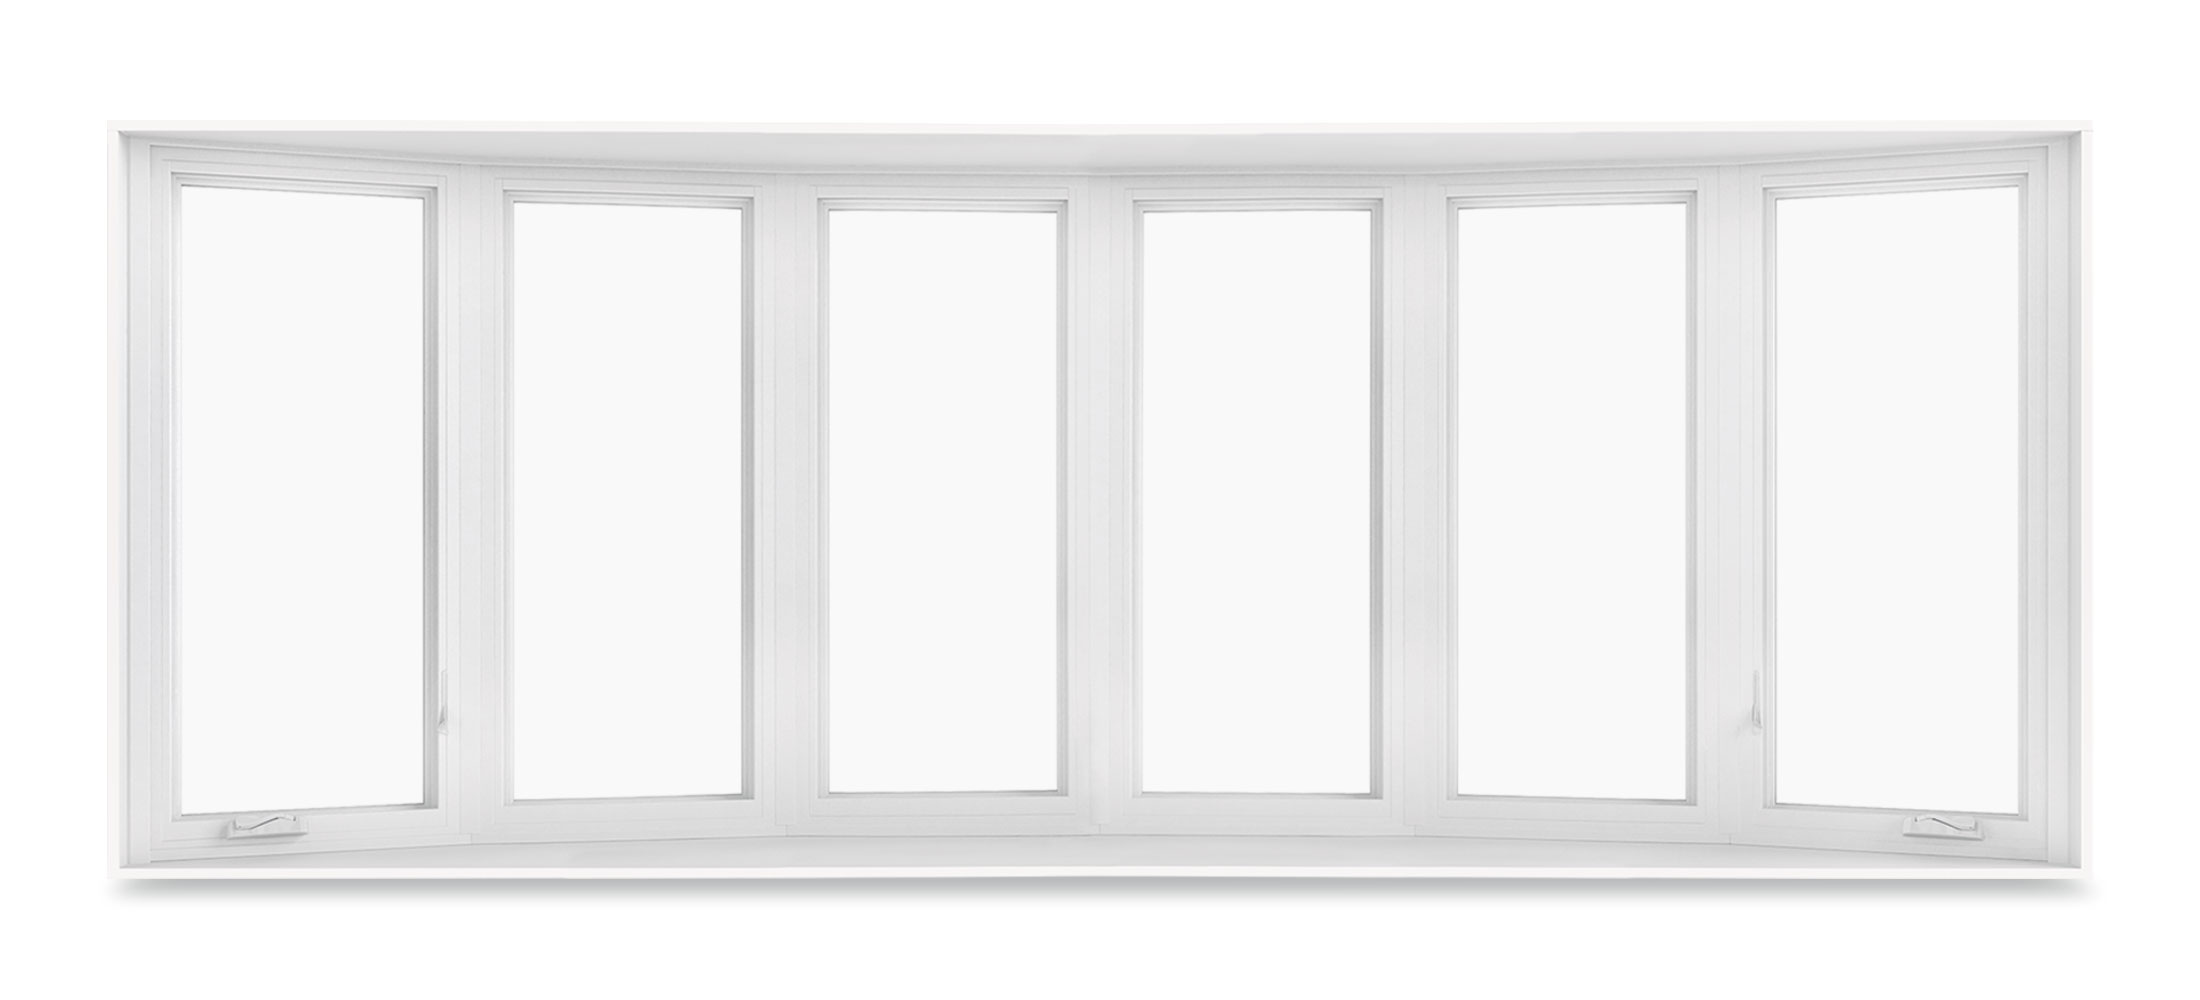 Bow window with 6-wide casements